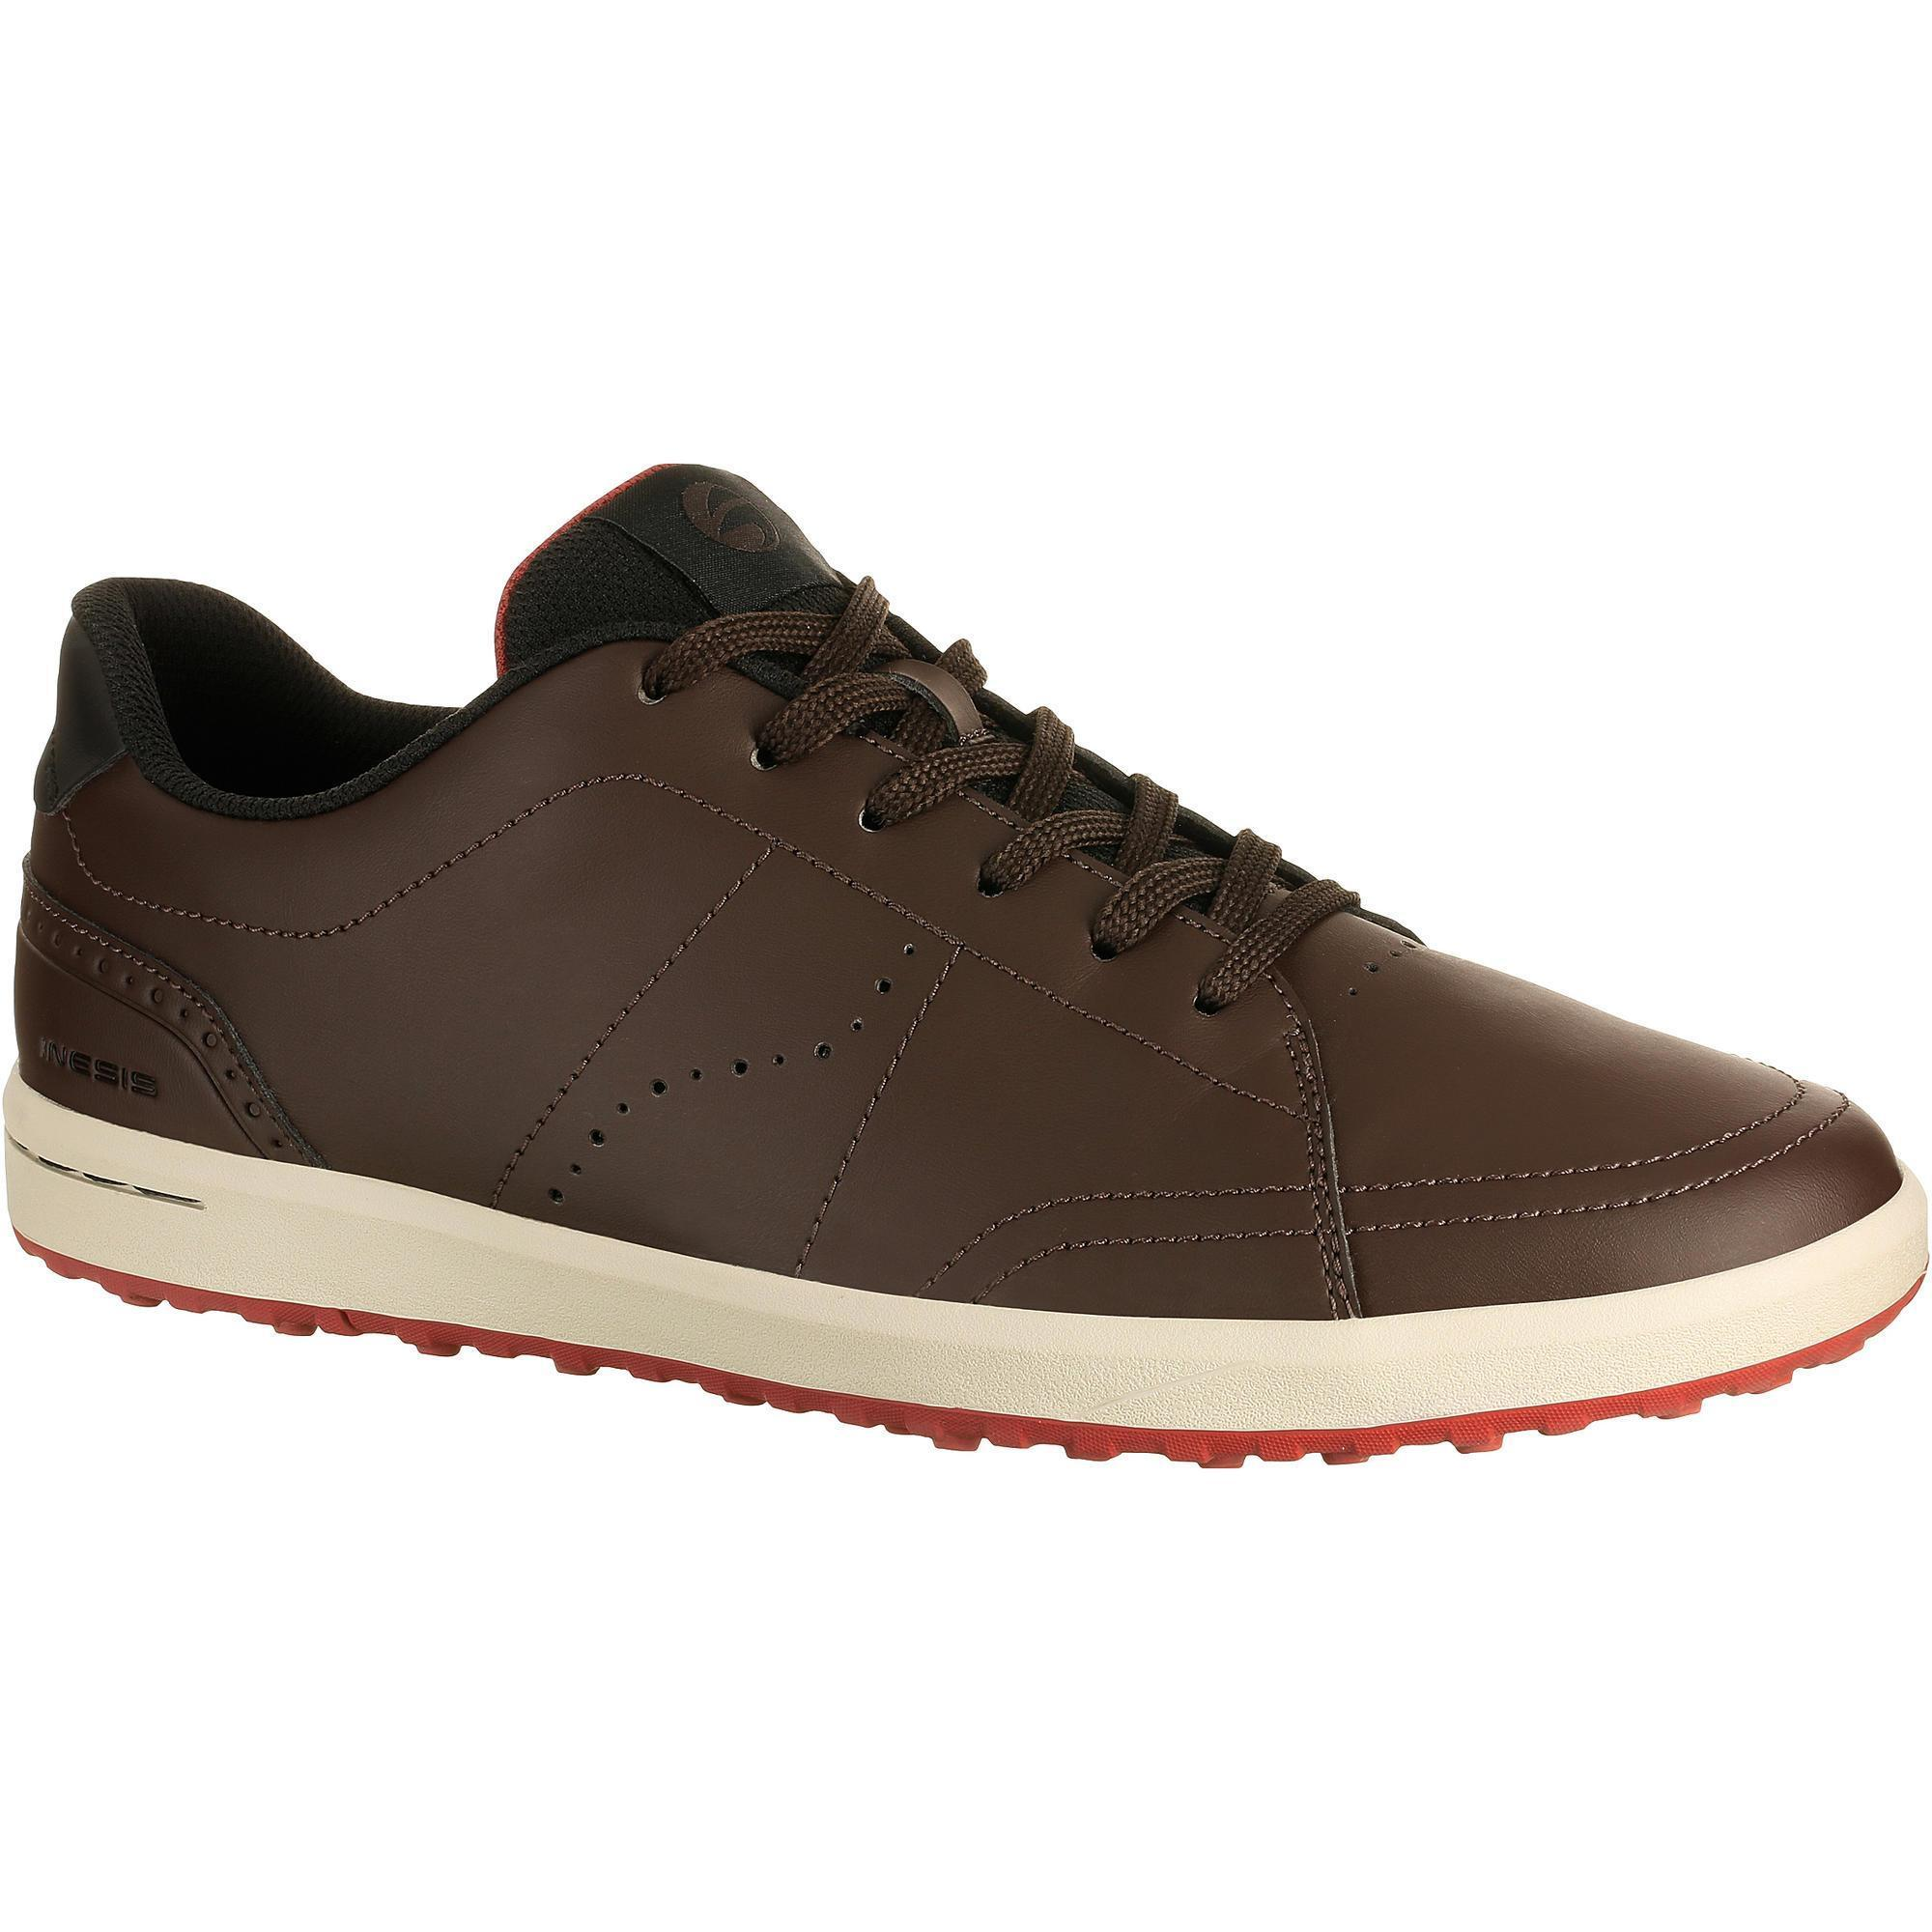 chaussures golf homme spikeless 100 marron inesis golf. Black Bedroom Furniture Sets. Home Design Ideas